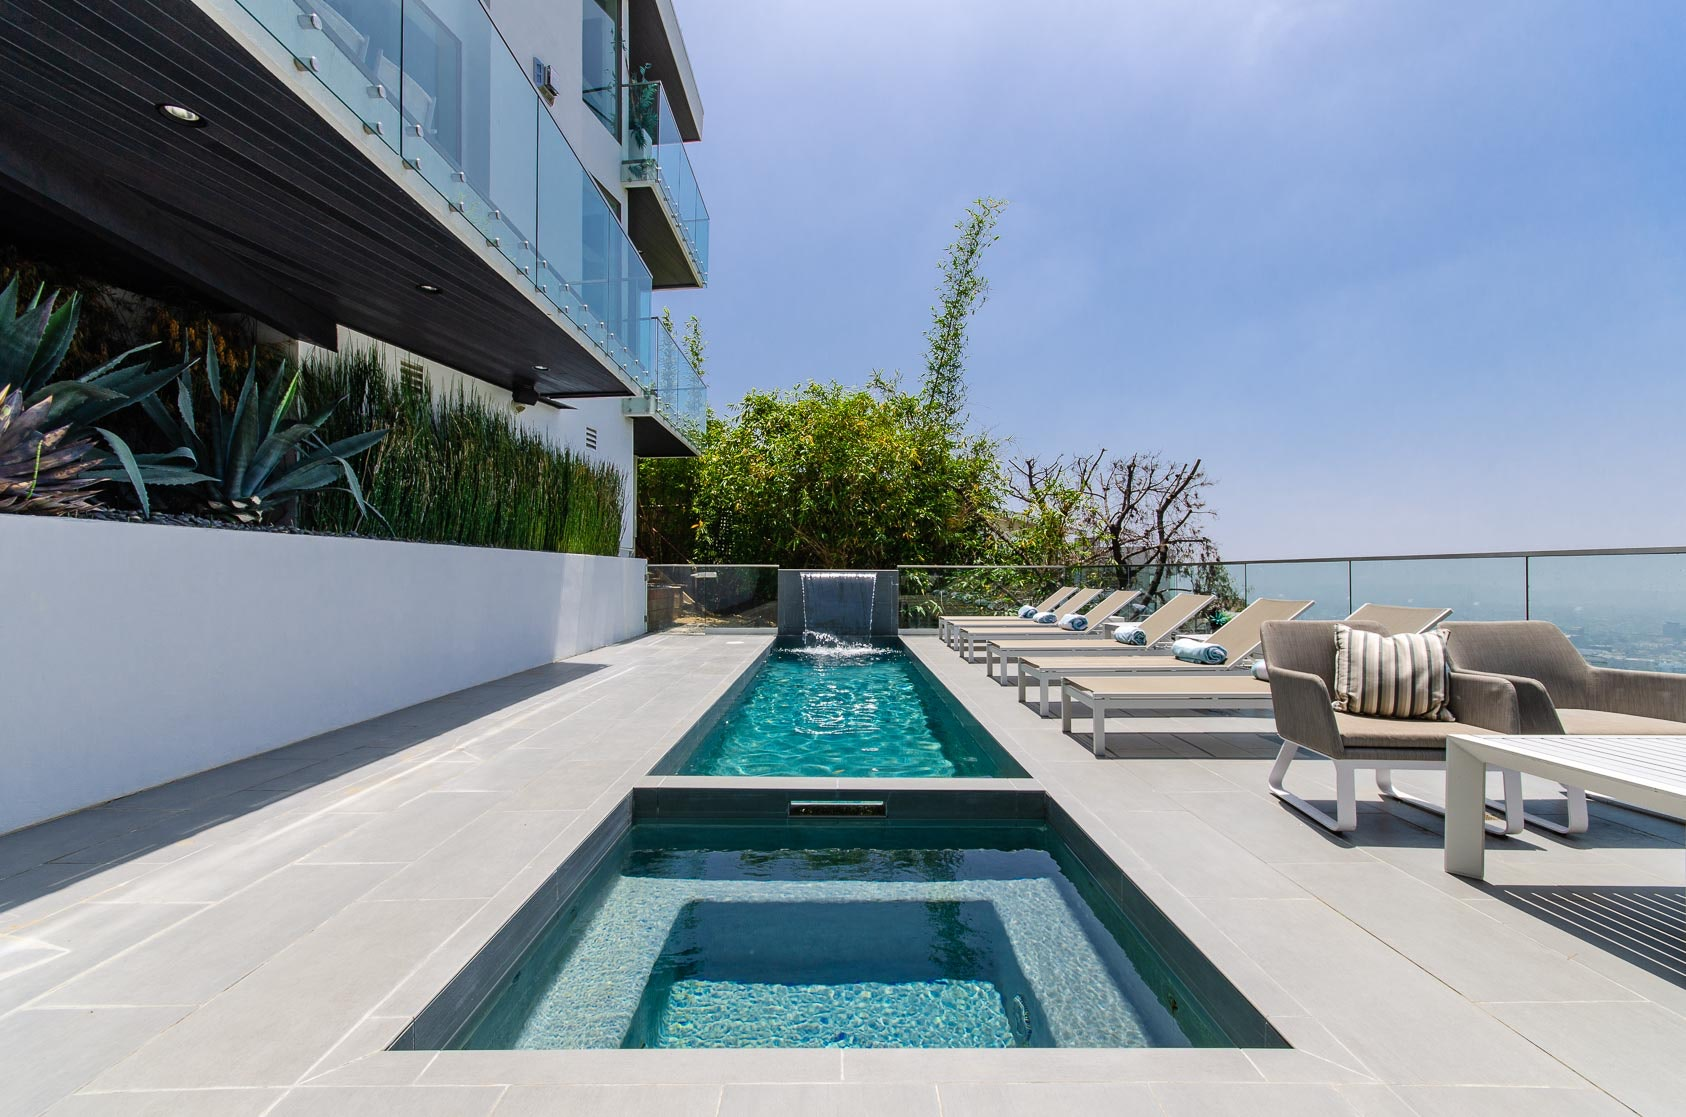 Make it Pop Art, Hollywood Hills, Los Angeles | The Plum Guide